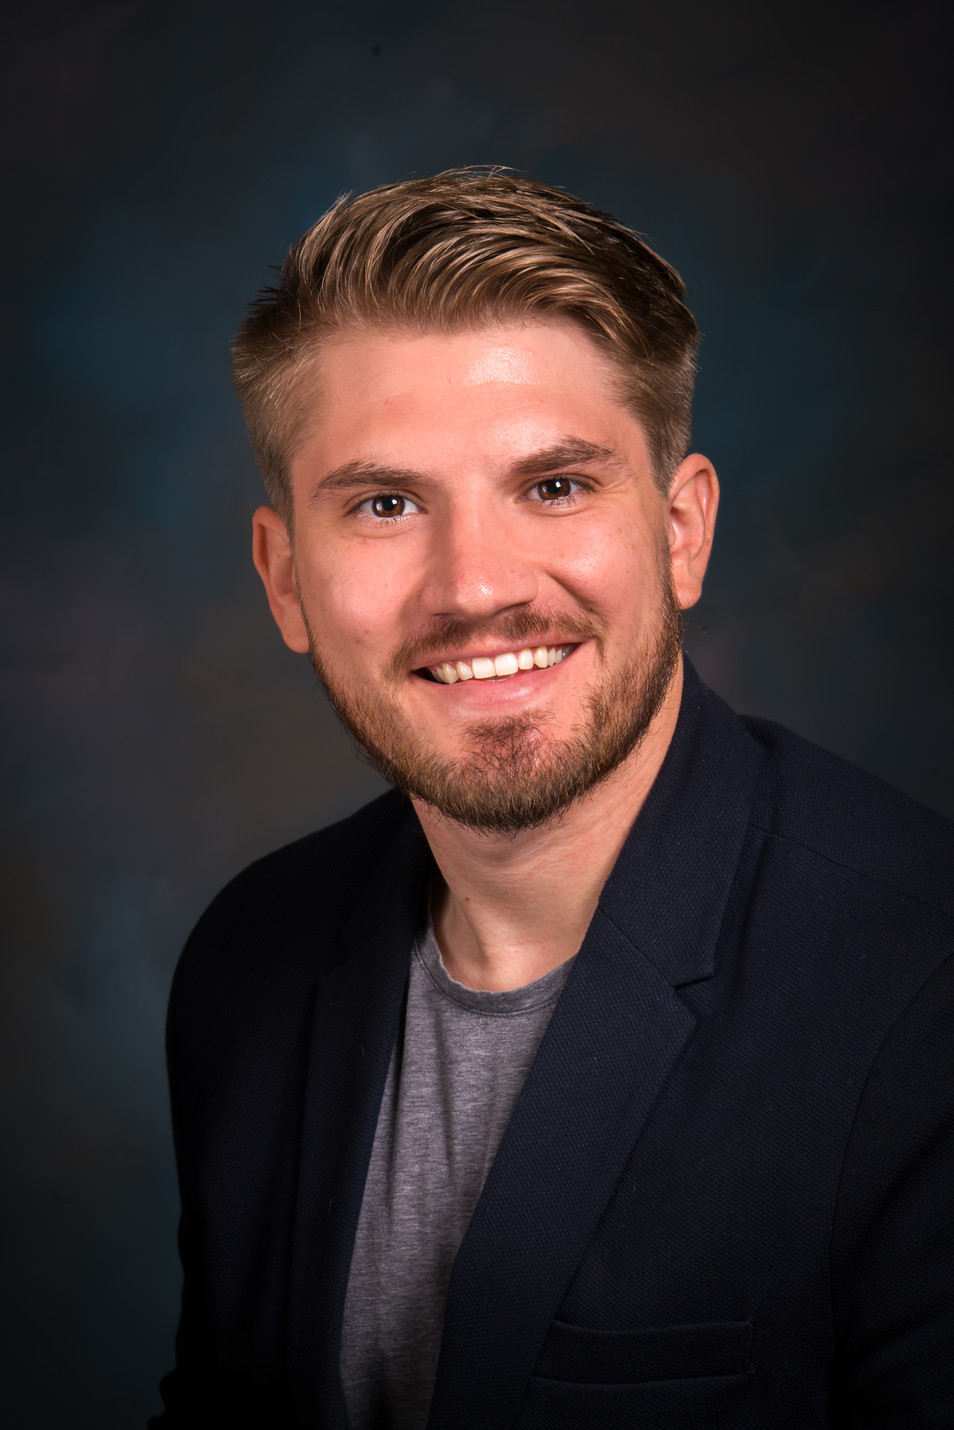 Traditional Headshot During an Event